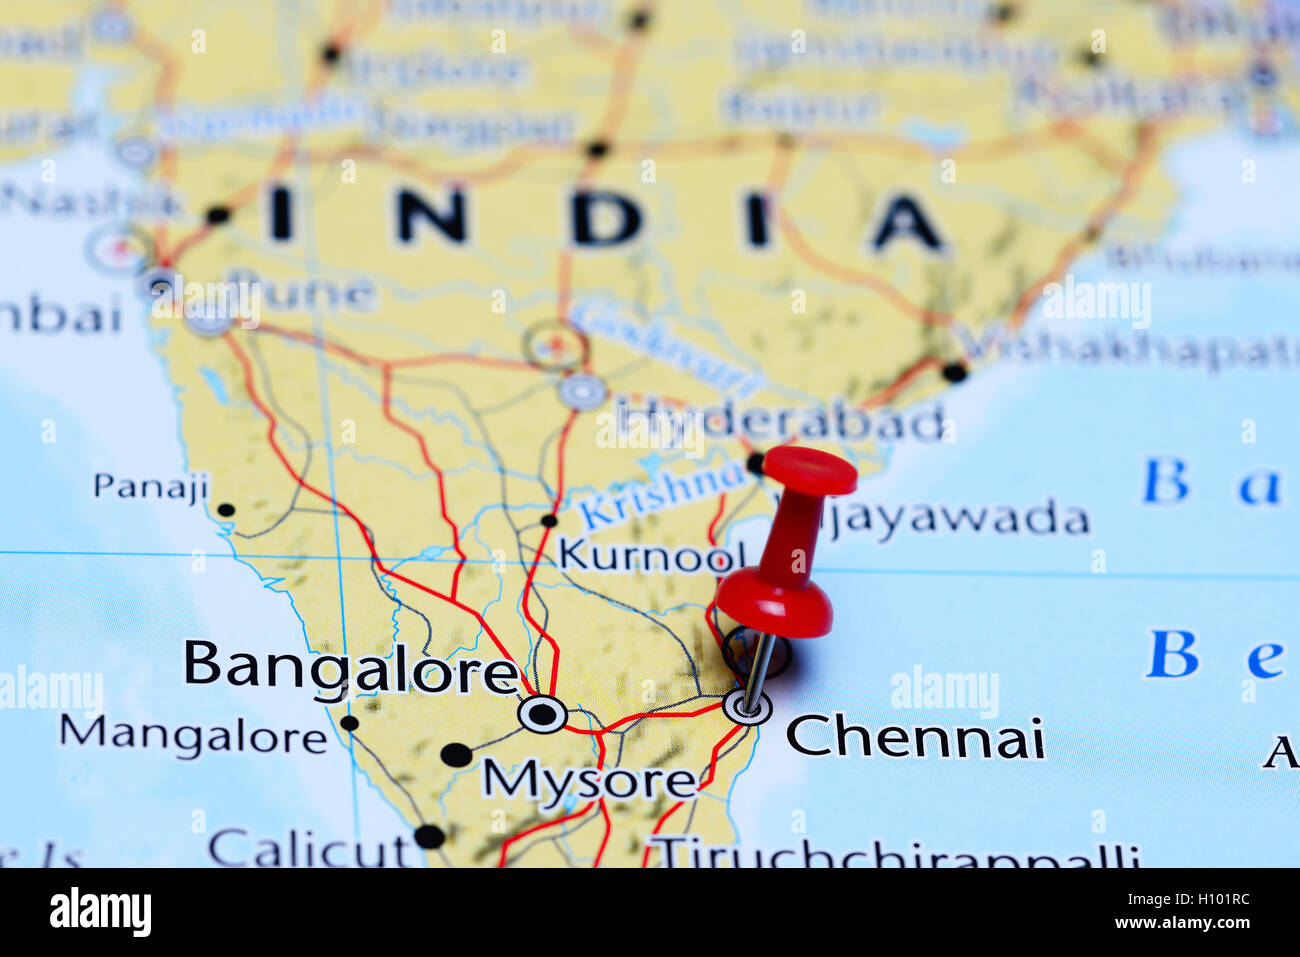 Chennai India Map Chennai pinned on a map of India Stock Photo: 121088672   Alamy